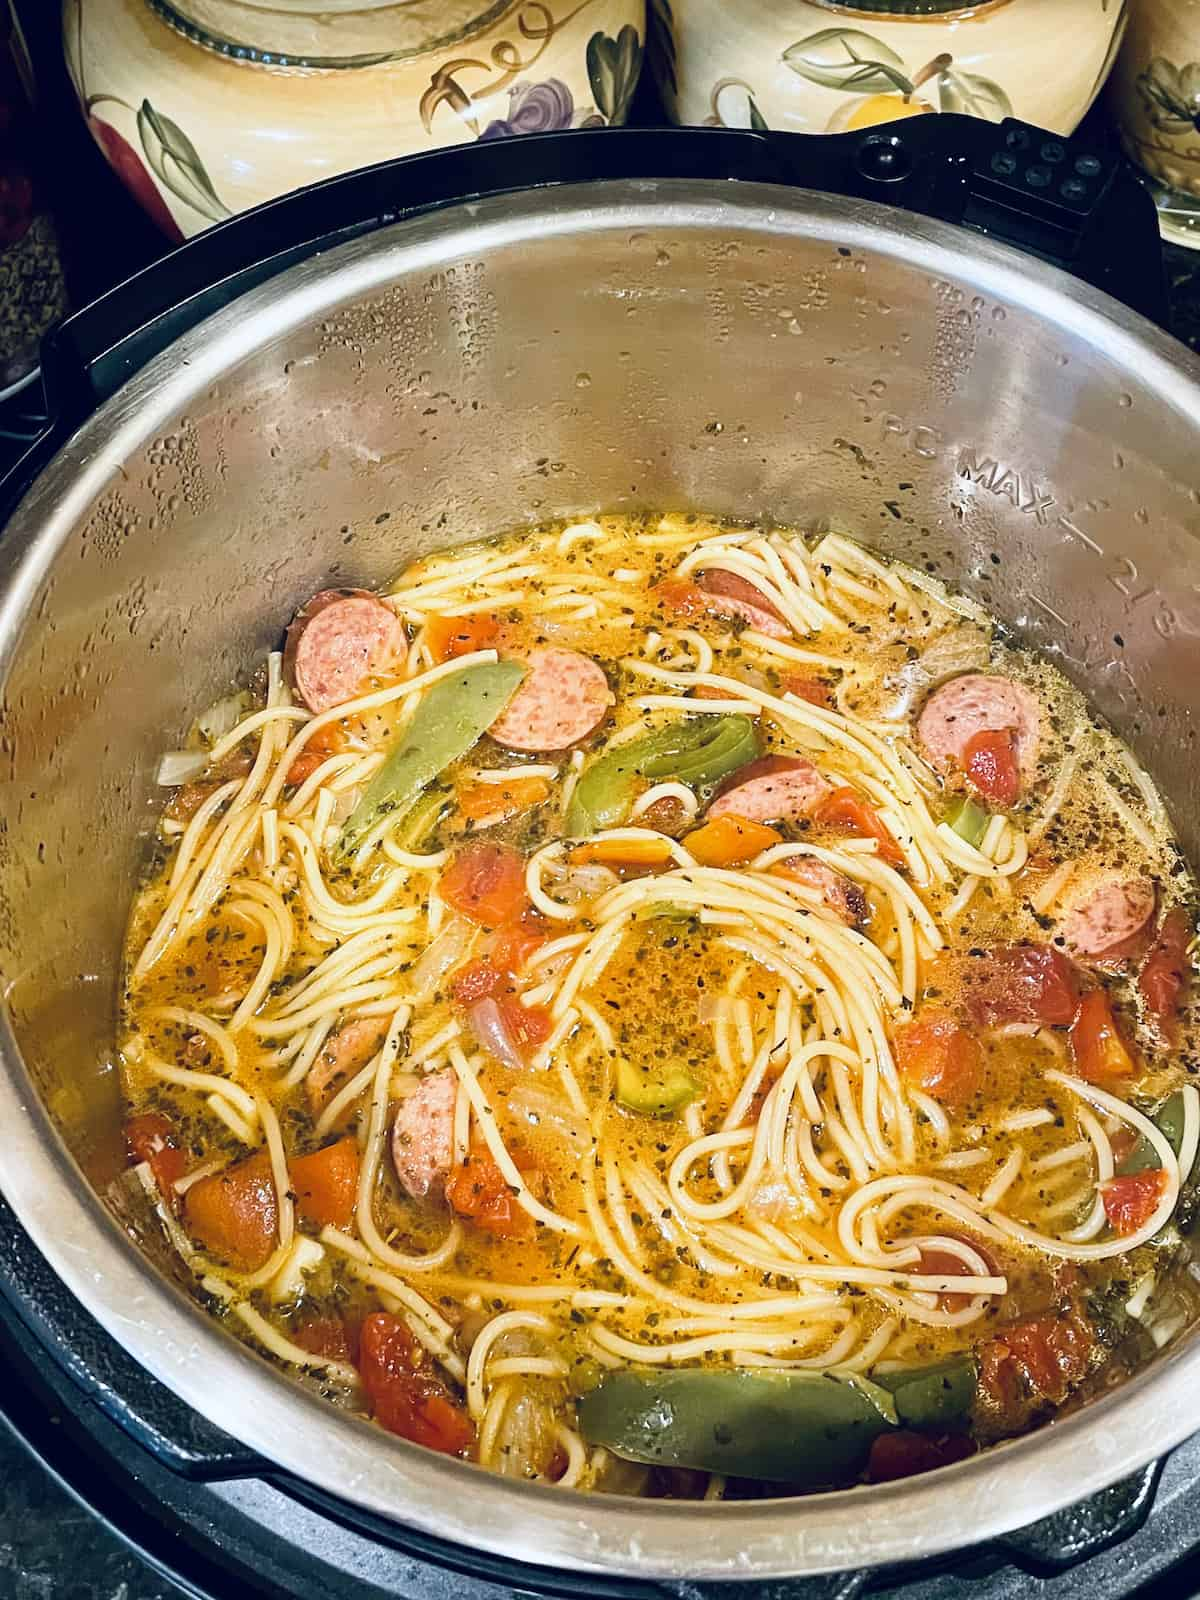 kielbasa and pasta cooked in the pressure cooker